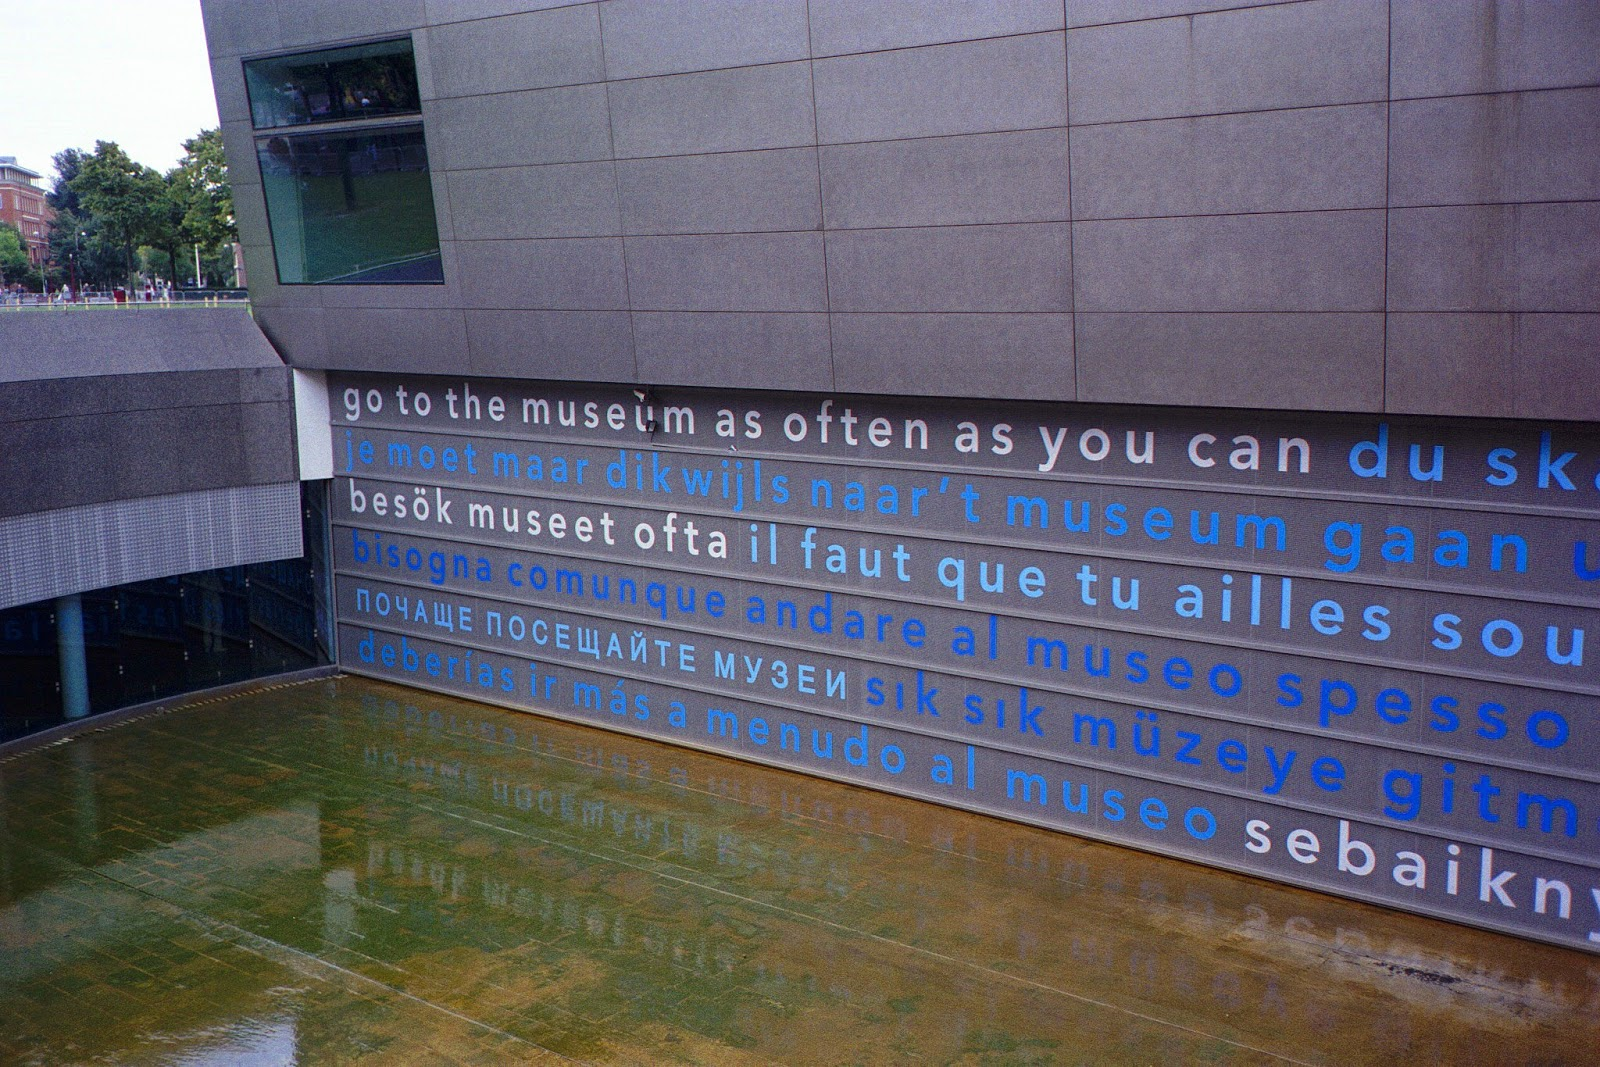 Water feature and art work at the Van Gogh Museum, Amsterdam